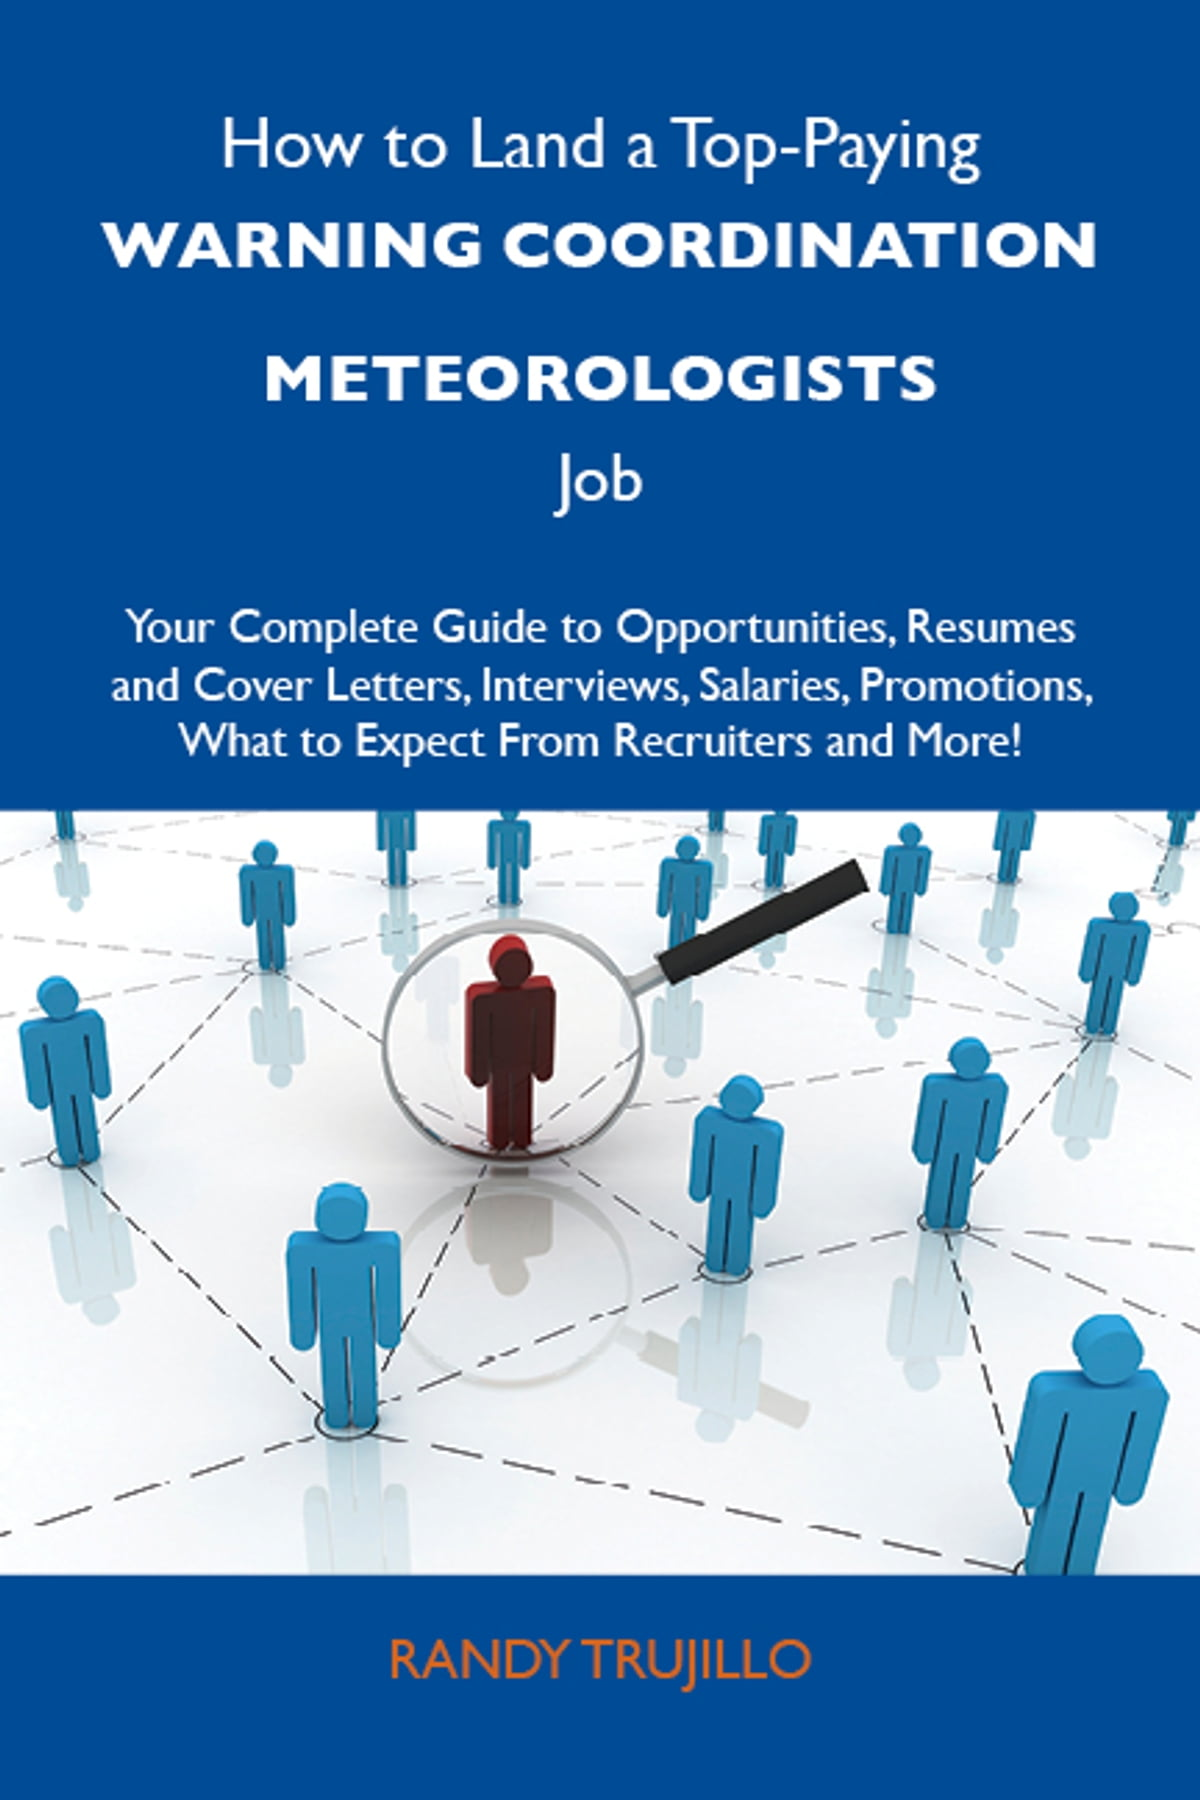 How To Land A Top Paying Warning Coordination Meteorologists Job Your Complete Guide To Opportunities Resumes And Cover Letters Interviews Salaries Promotions What To Expect From Recruiters And More Ebook By Trujillo Randy